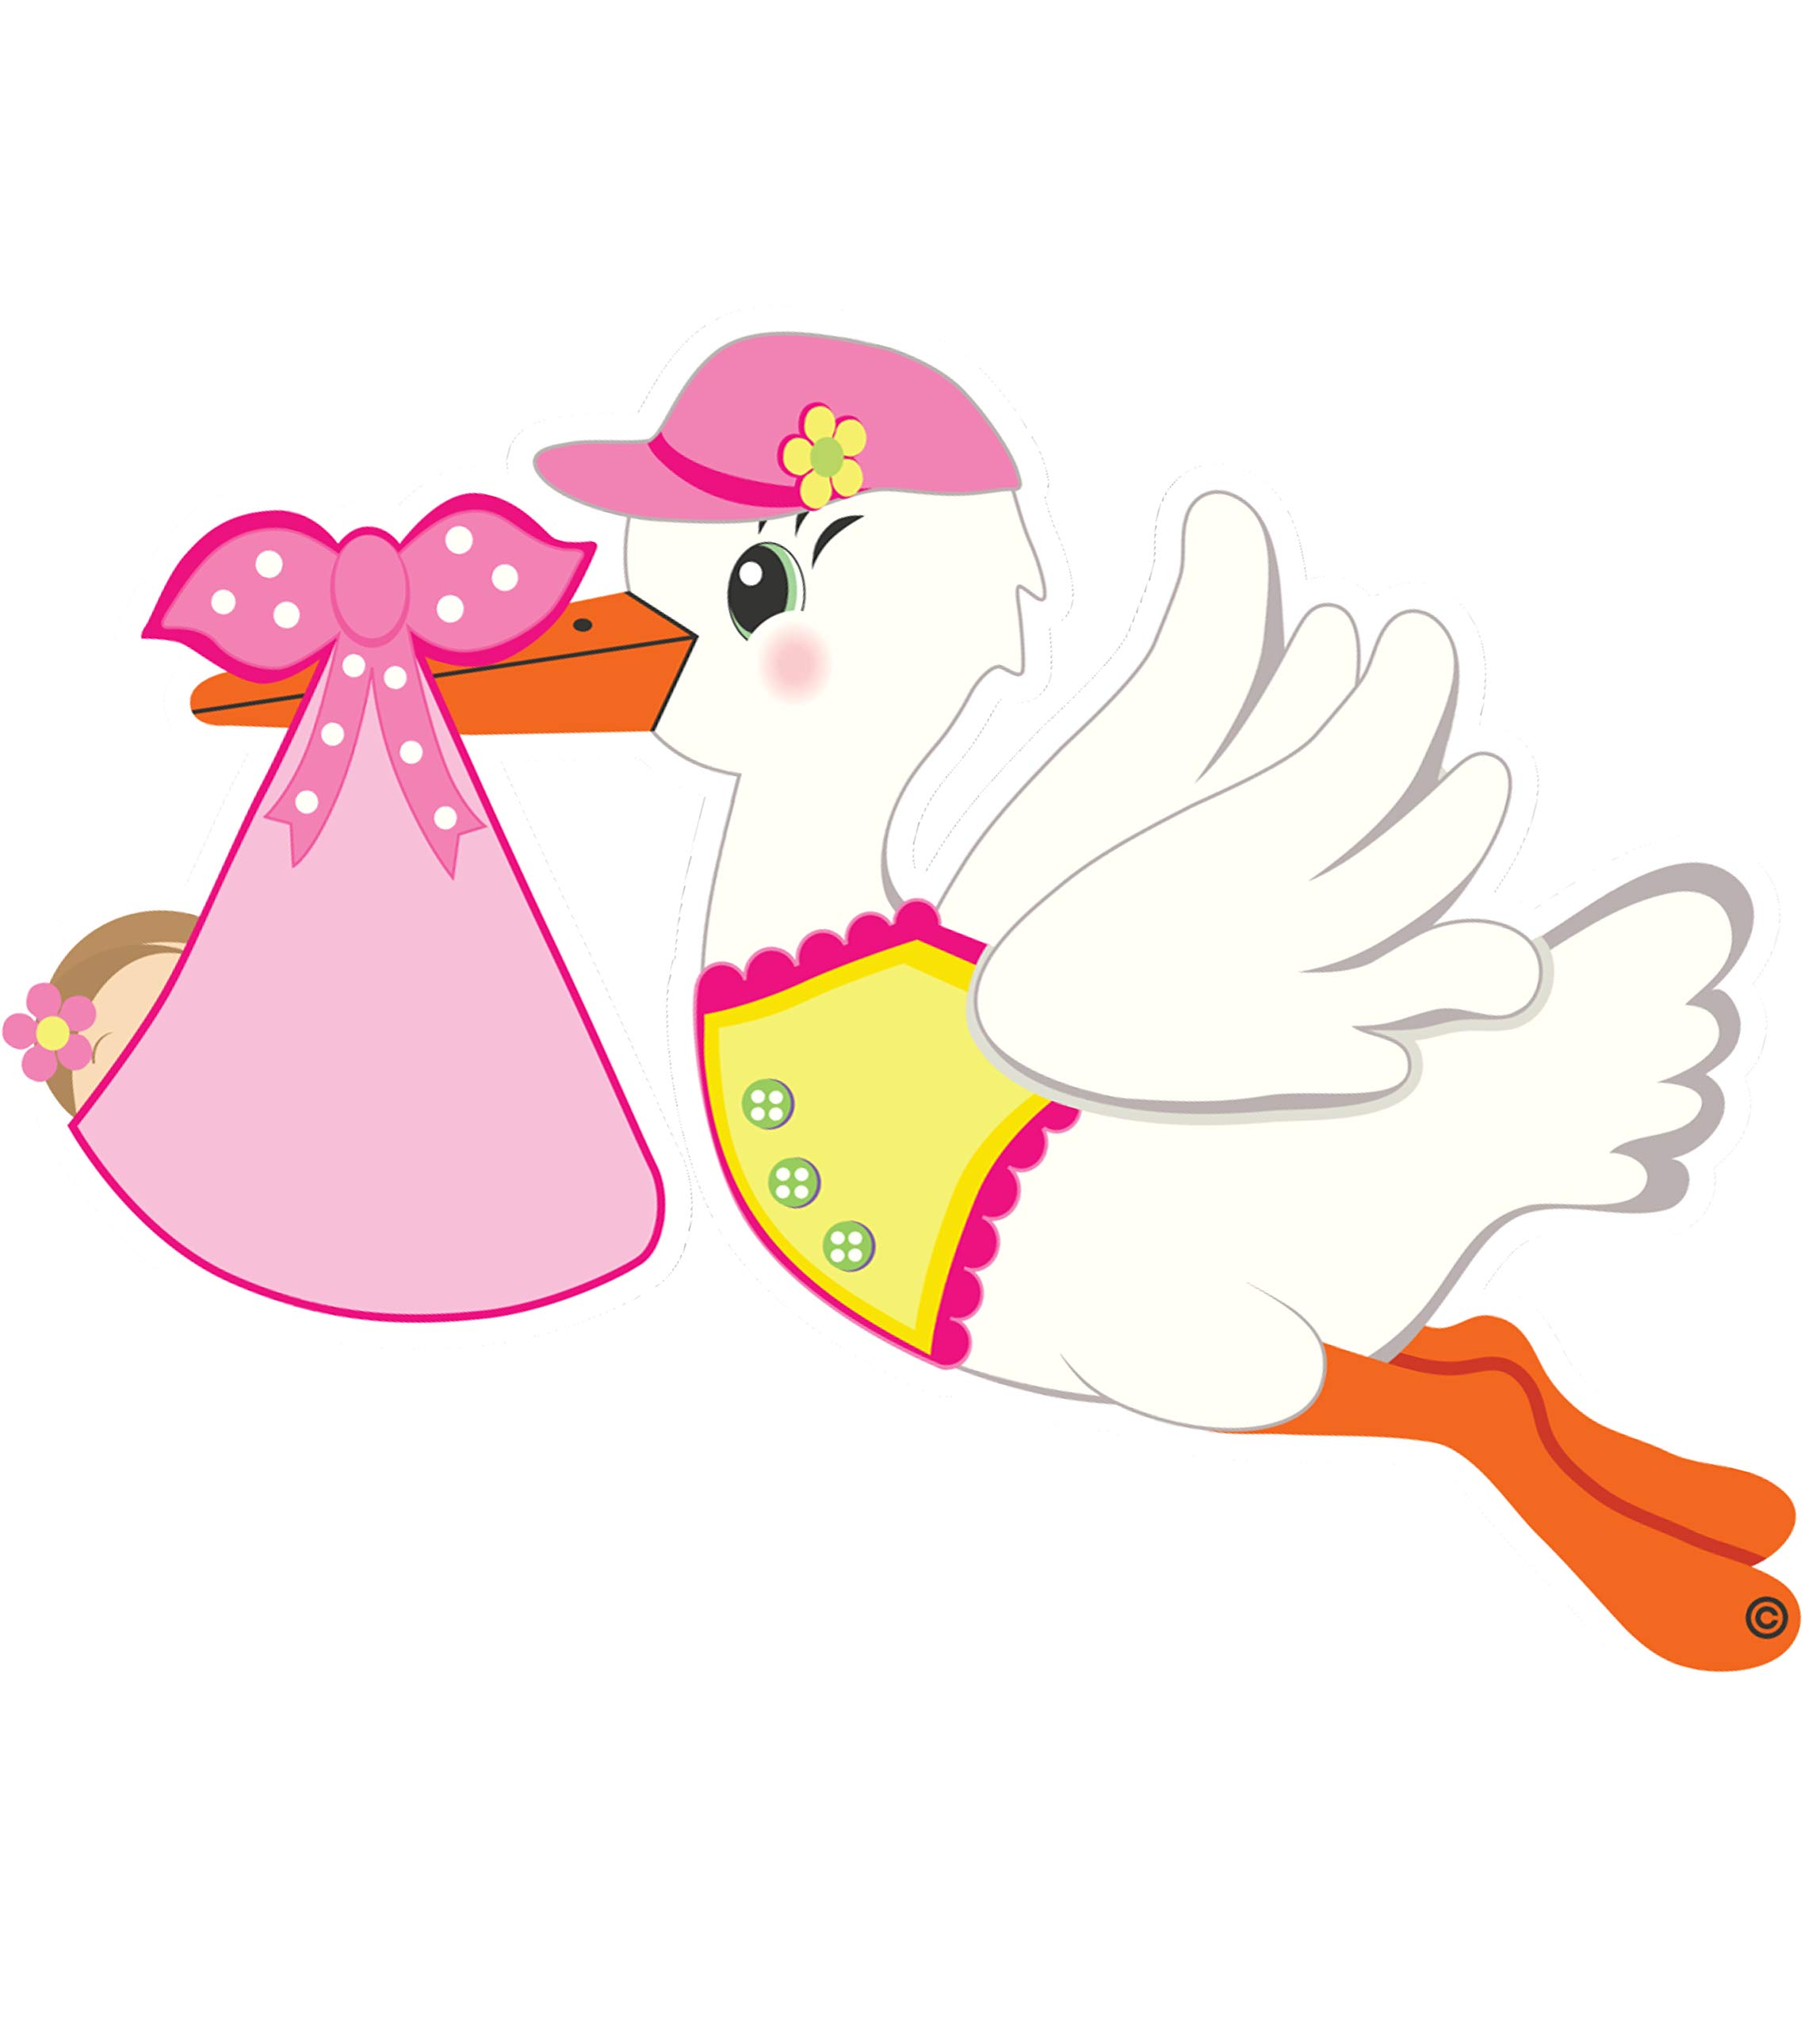 It's a Girl Stork Baby Door Sign Hanger - Welcome Home Newborn Announcement - Pink Shower Party Decoration - Special Delivery Hospital Wreath - Expecting Gift